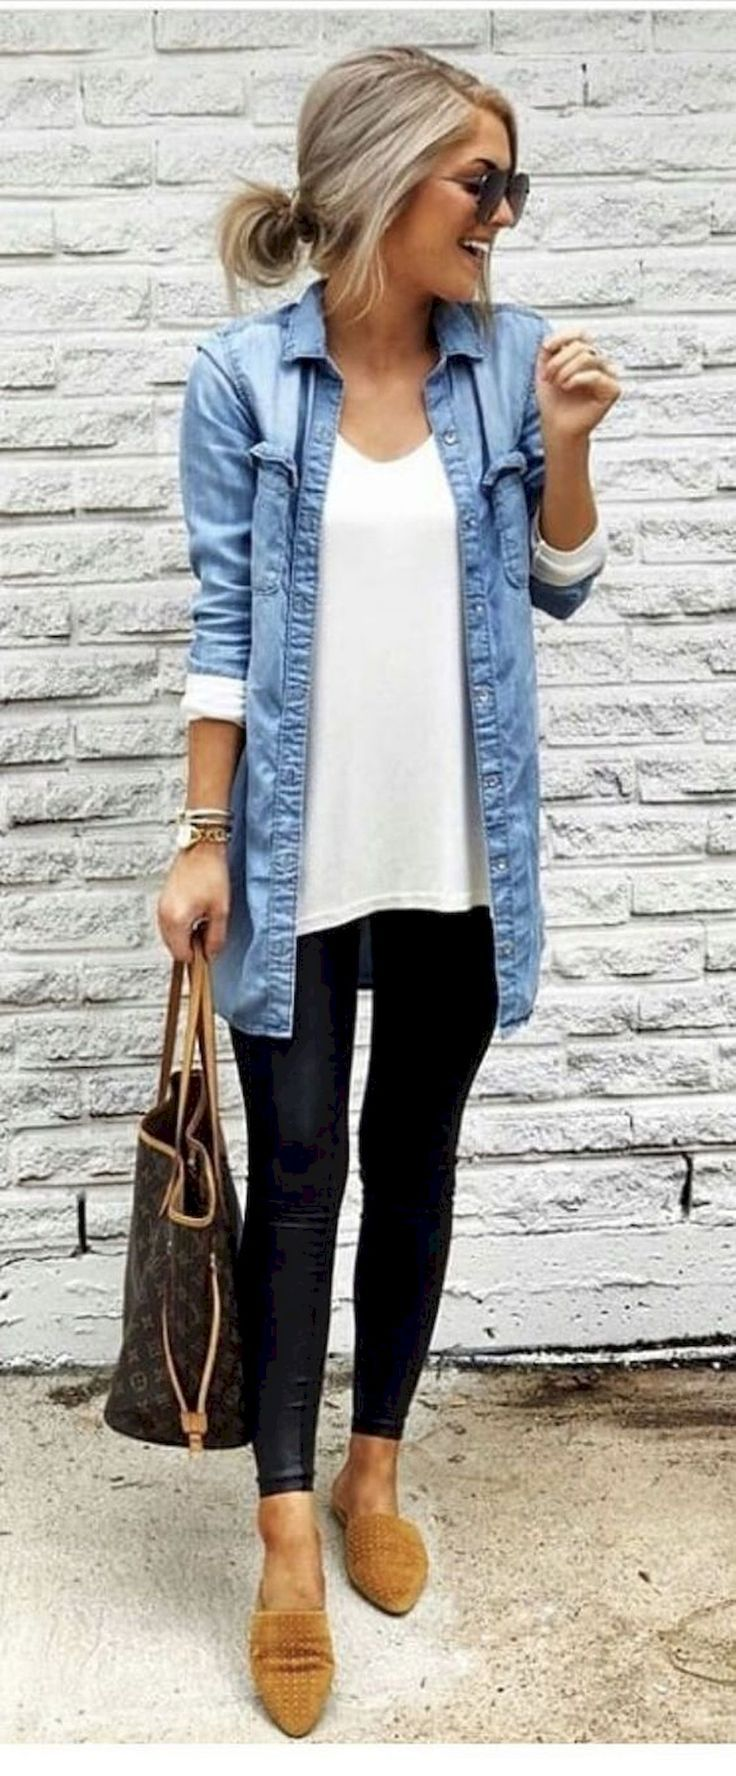 8 Best Spring Outfits Casual 8 for Women  Spring outfits